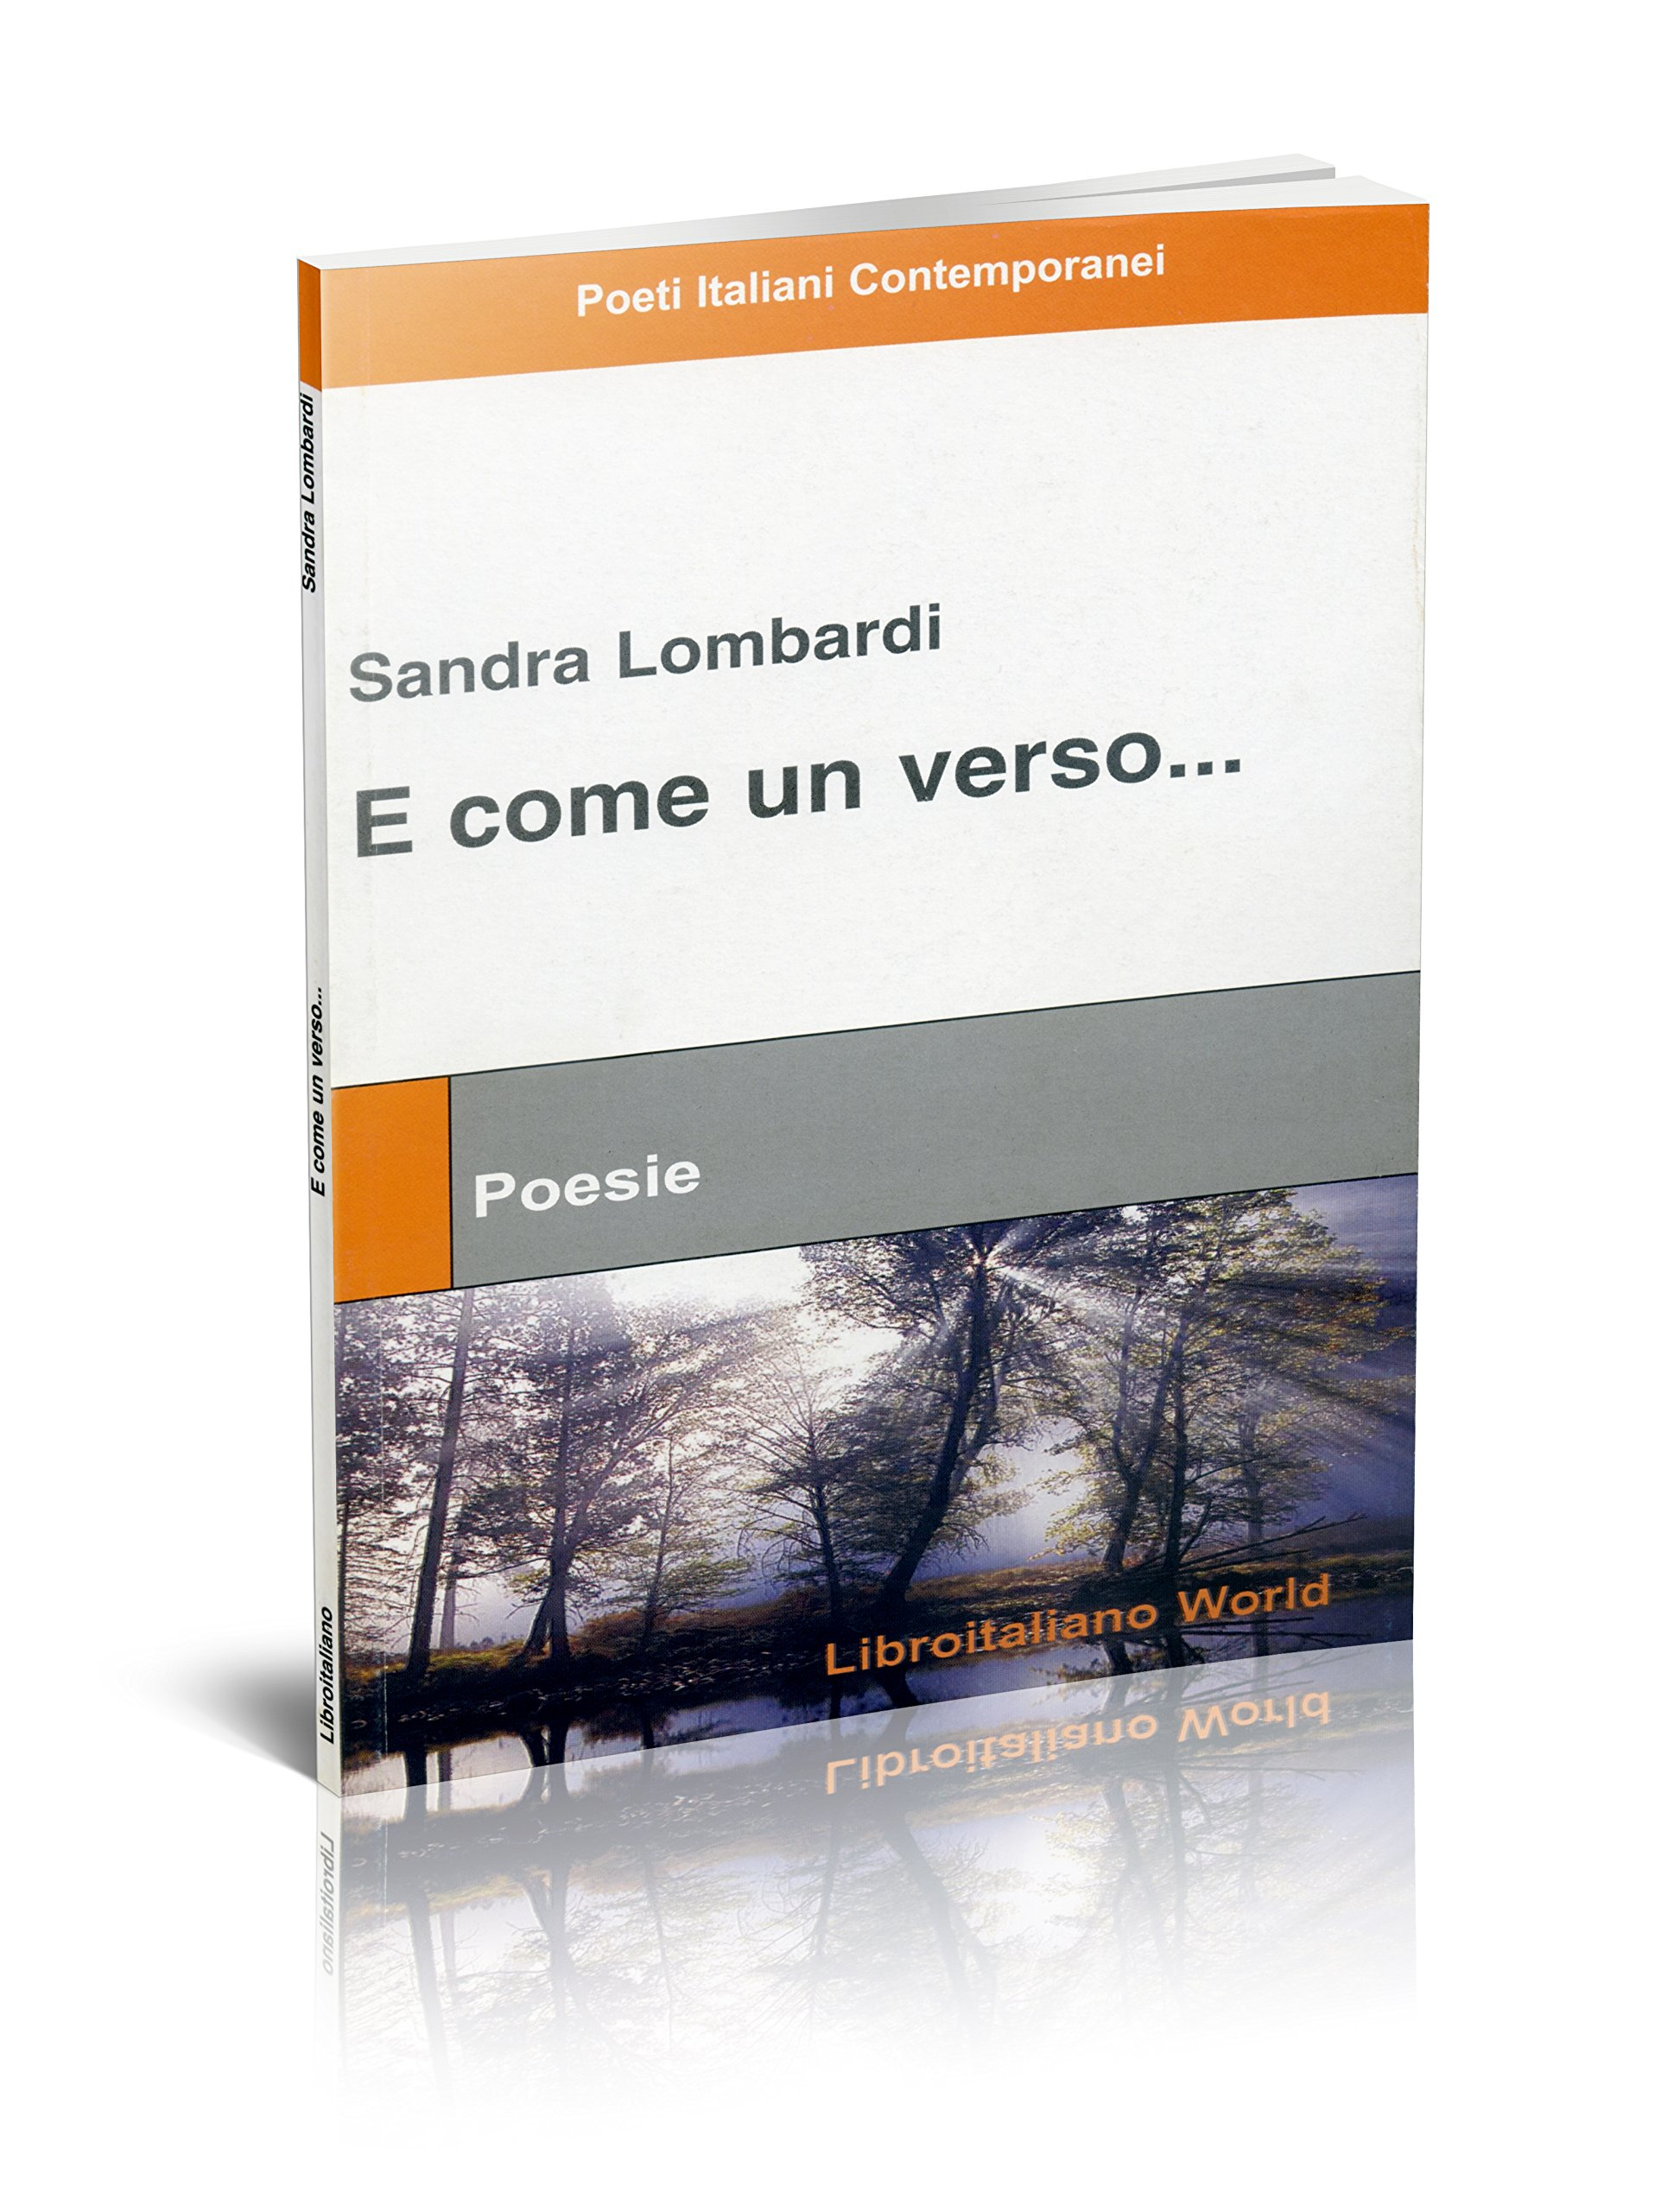 E come un verso..., Sandra Lombardi, LibroItaliano World, 2006, 64 pagine, ISBN 978-8878651920